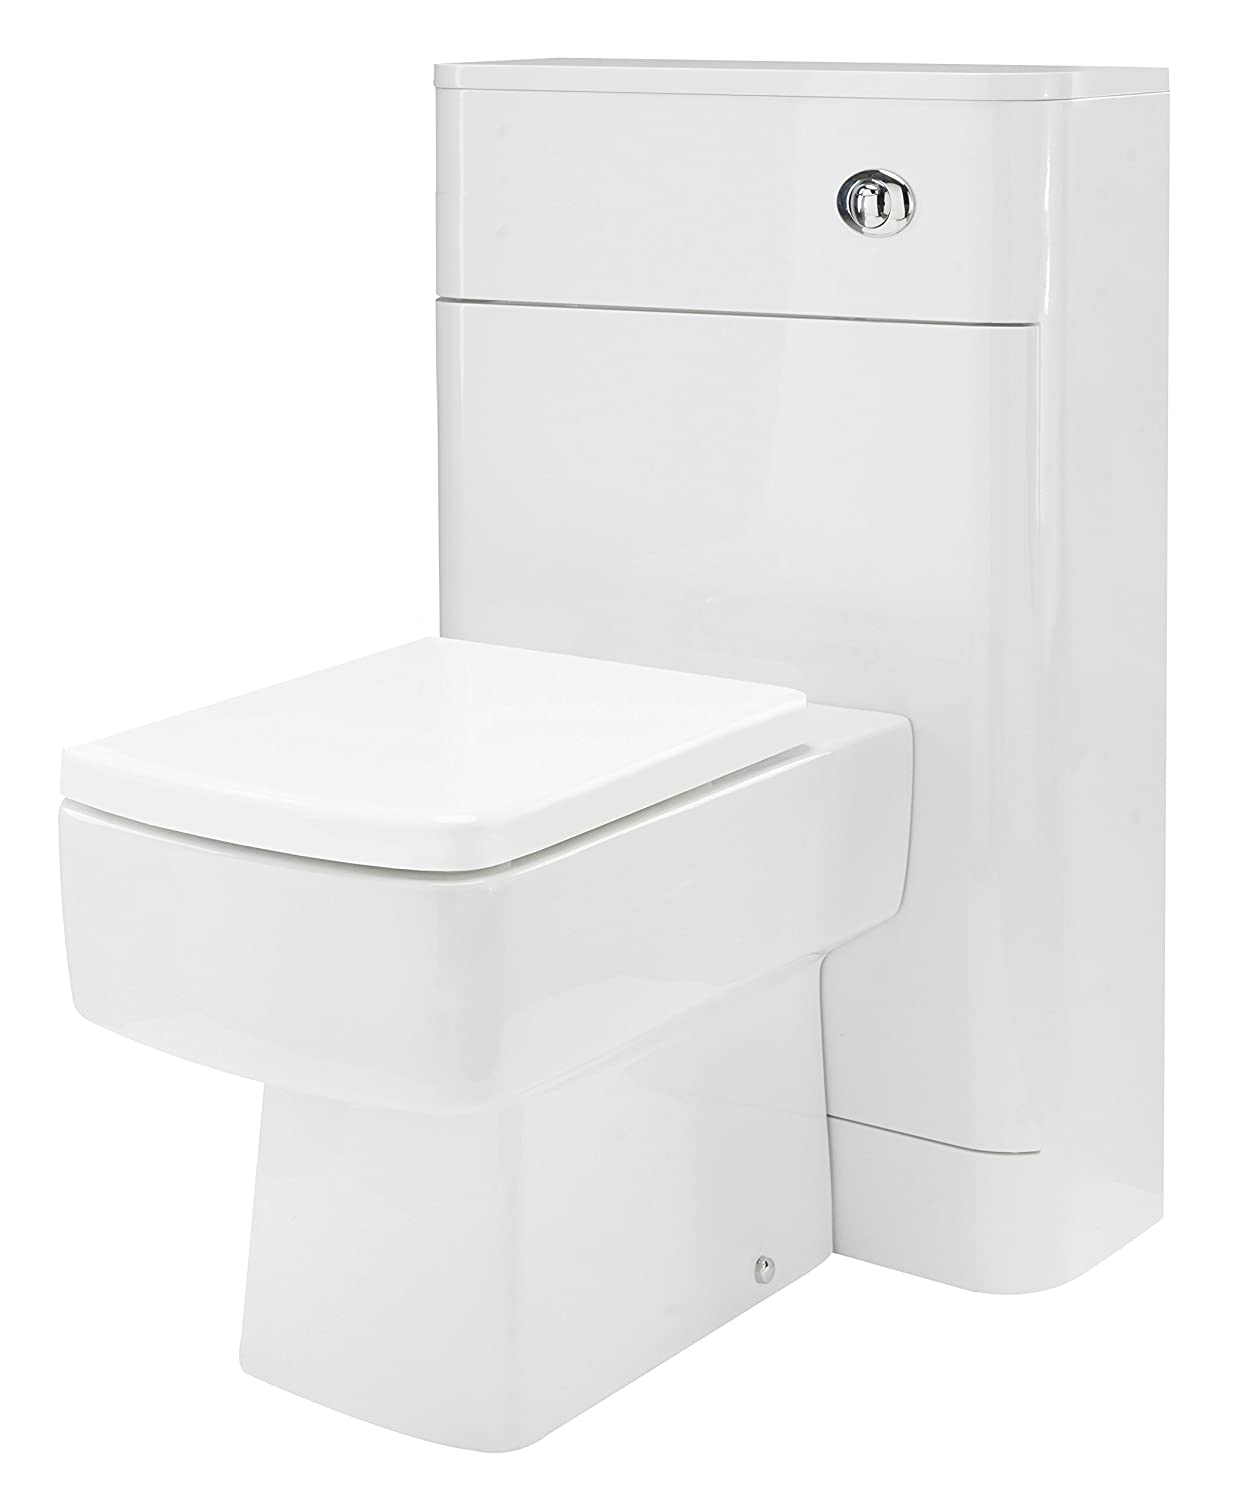 Desire High Gloss White Cyrenne wall-mounted square Vanity Unit with basin (600mm) VeeBath